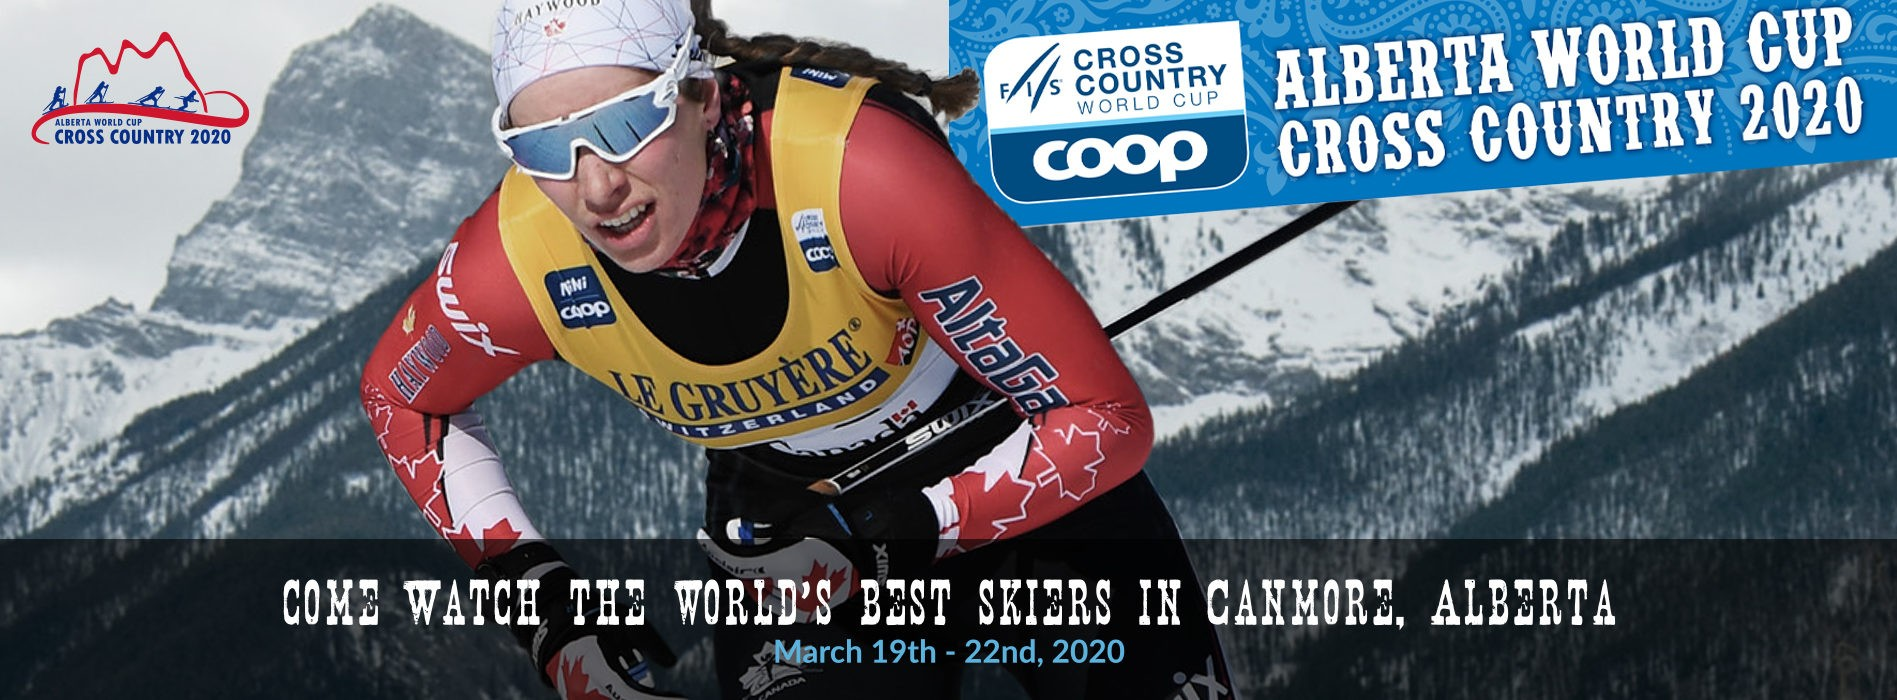 Alberta World Cup March 2020 Event